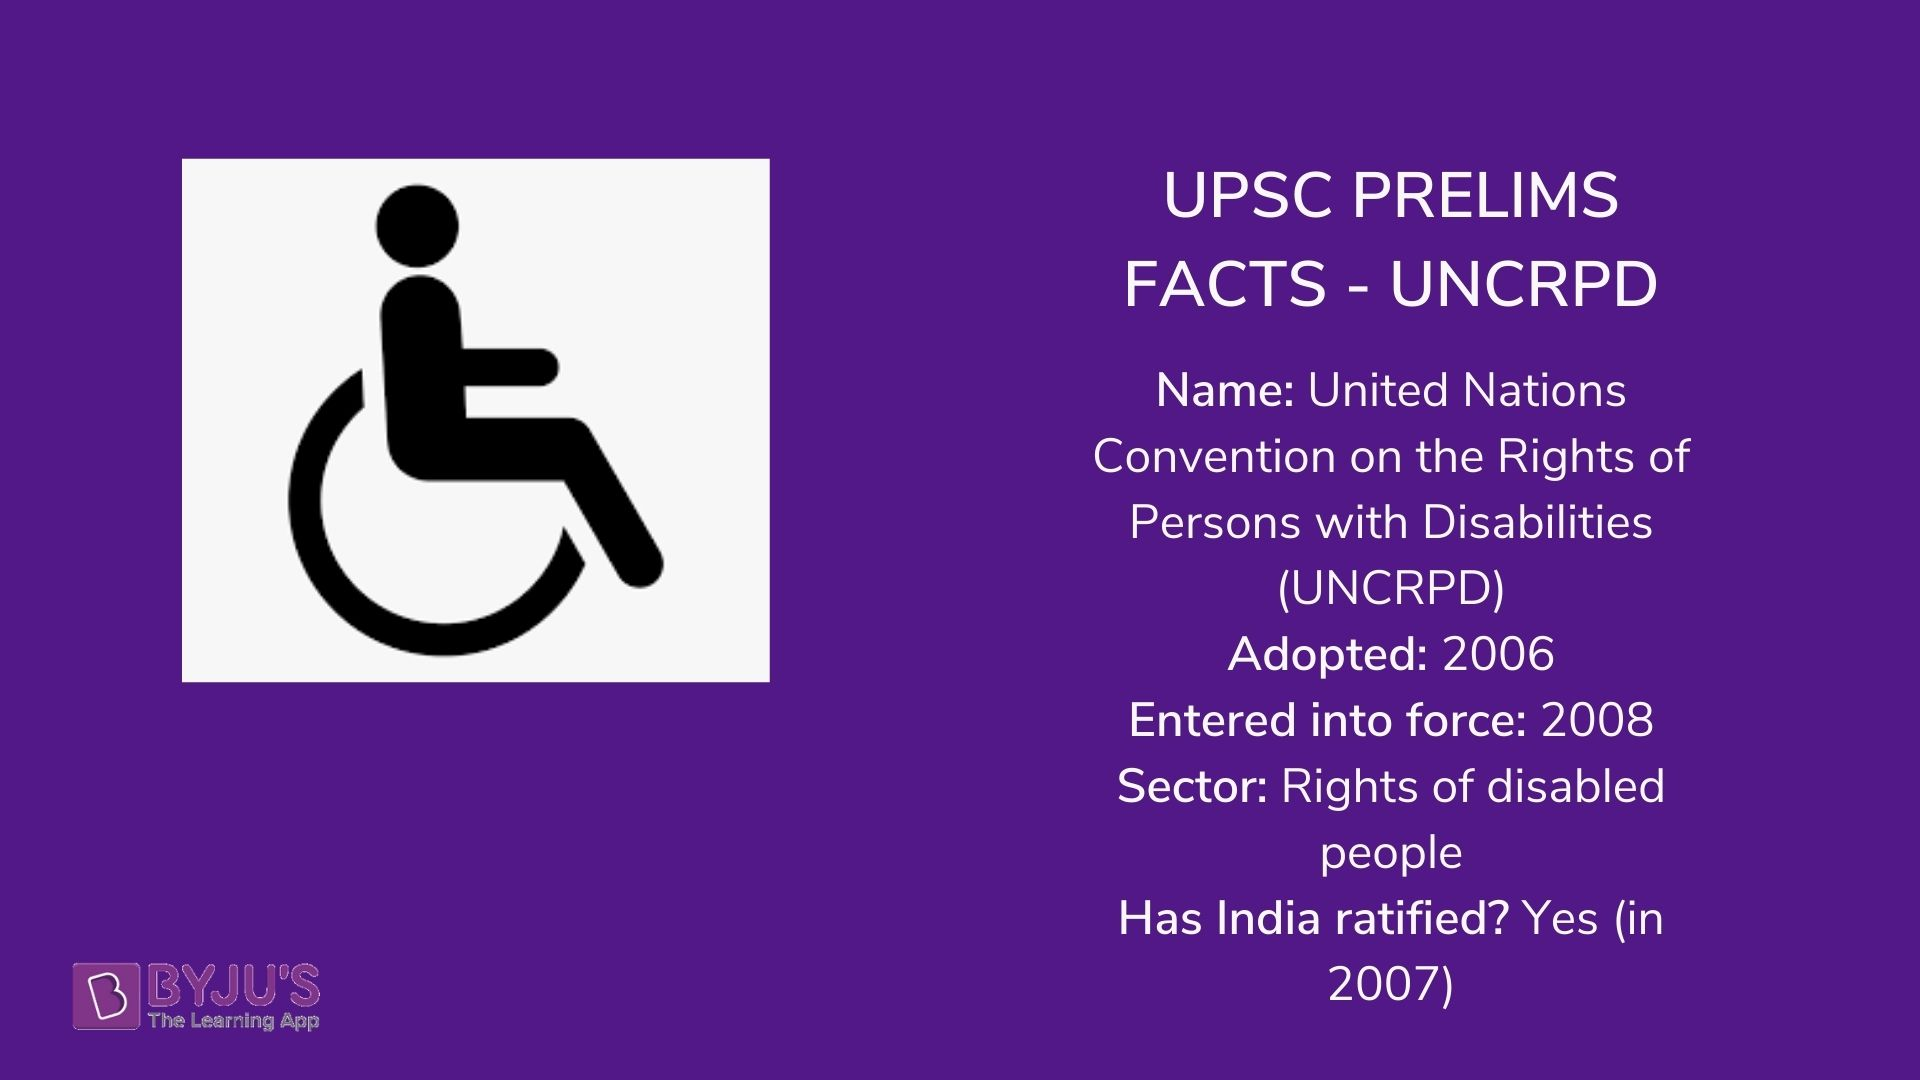 UPSC PRELIMS FACTS - UNCRPD